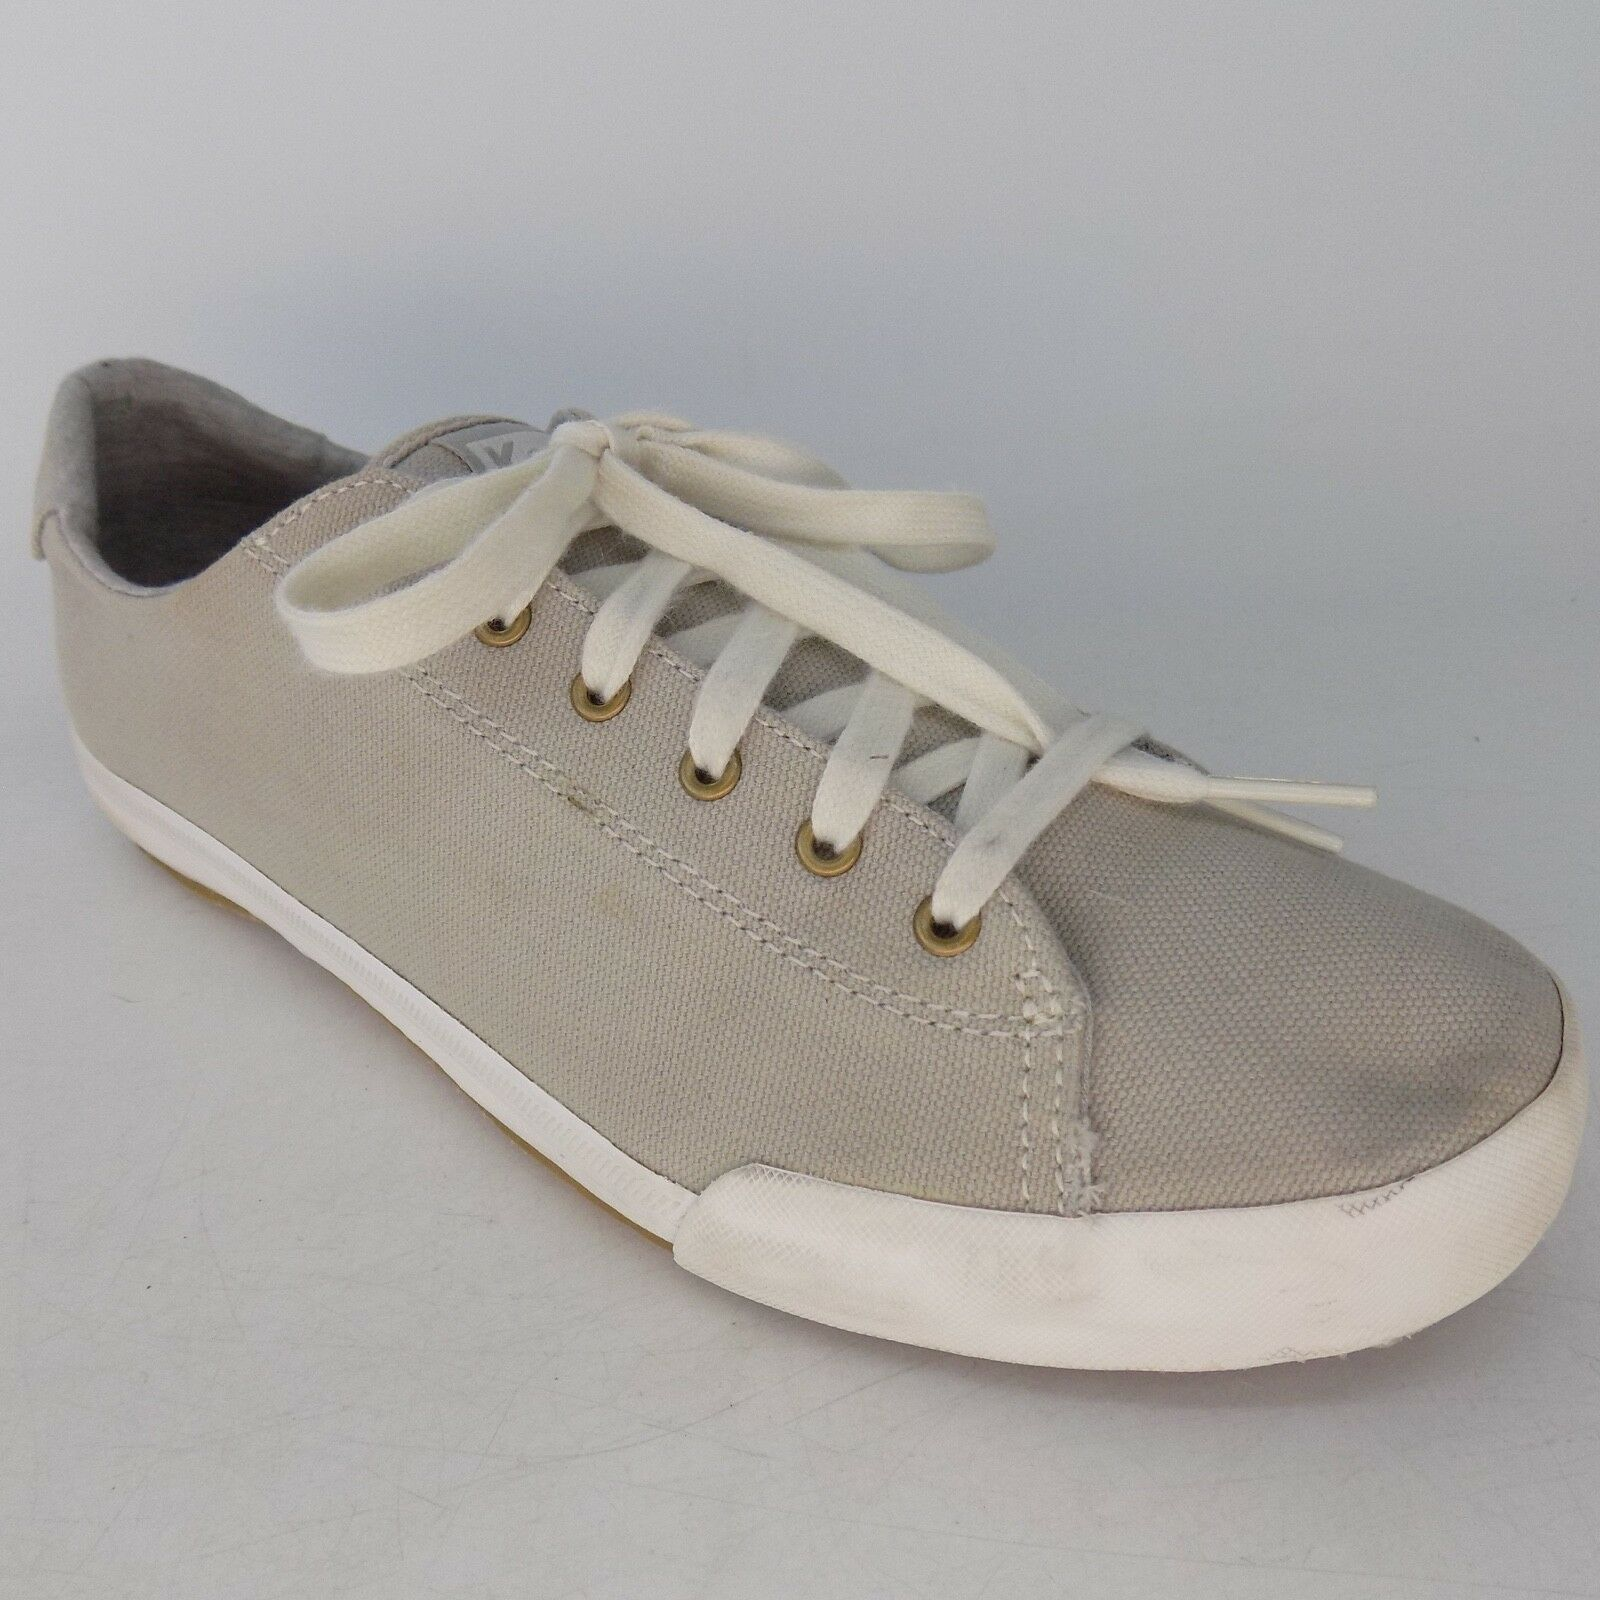 Rocket Dog Jumpin BC Canvas Casual Women shoes Size 8 M EU 38.5 AL4962